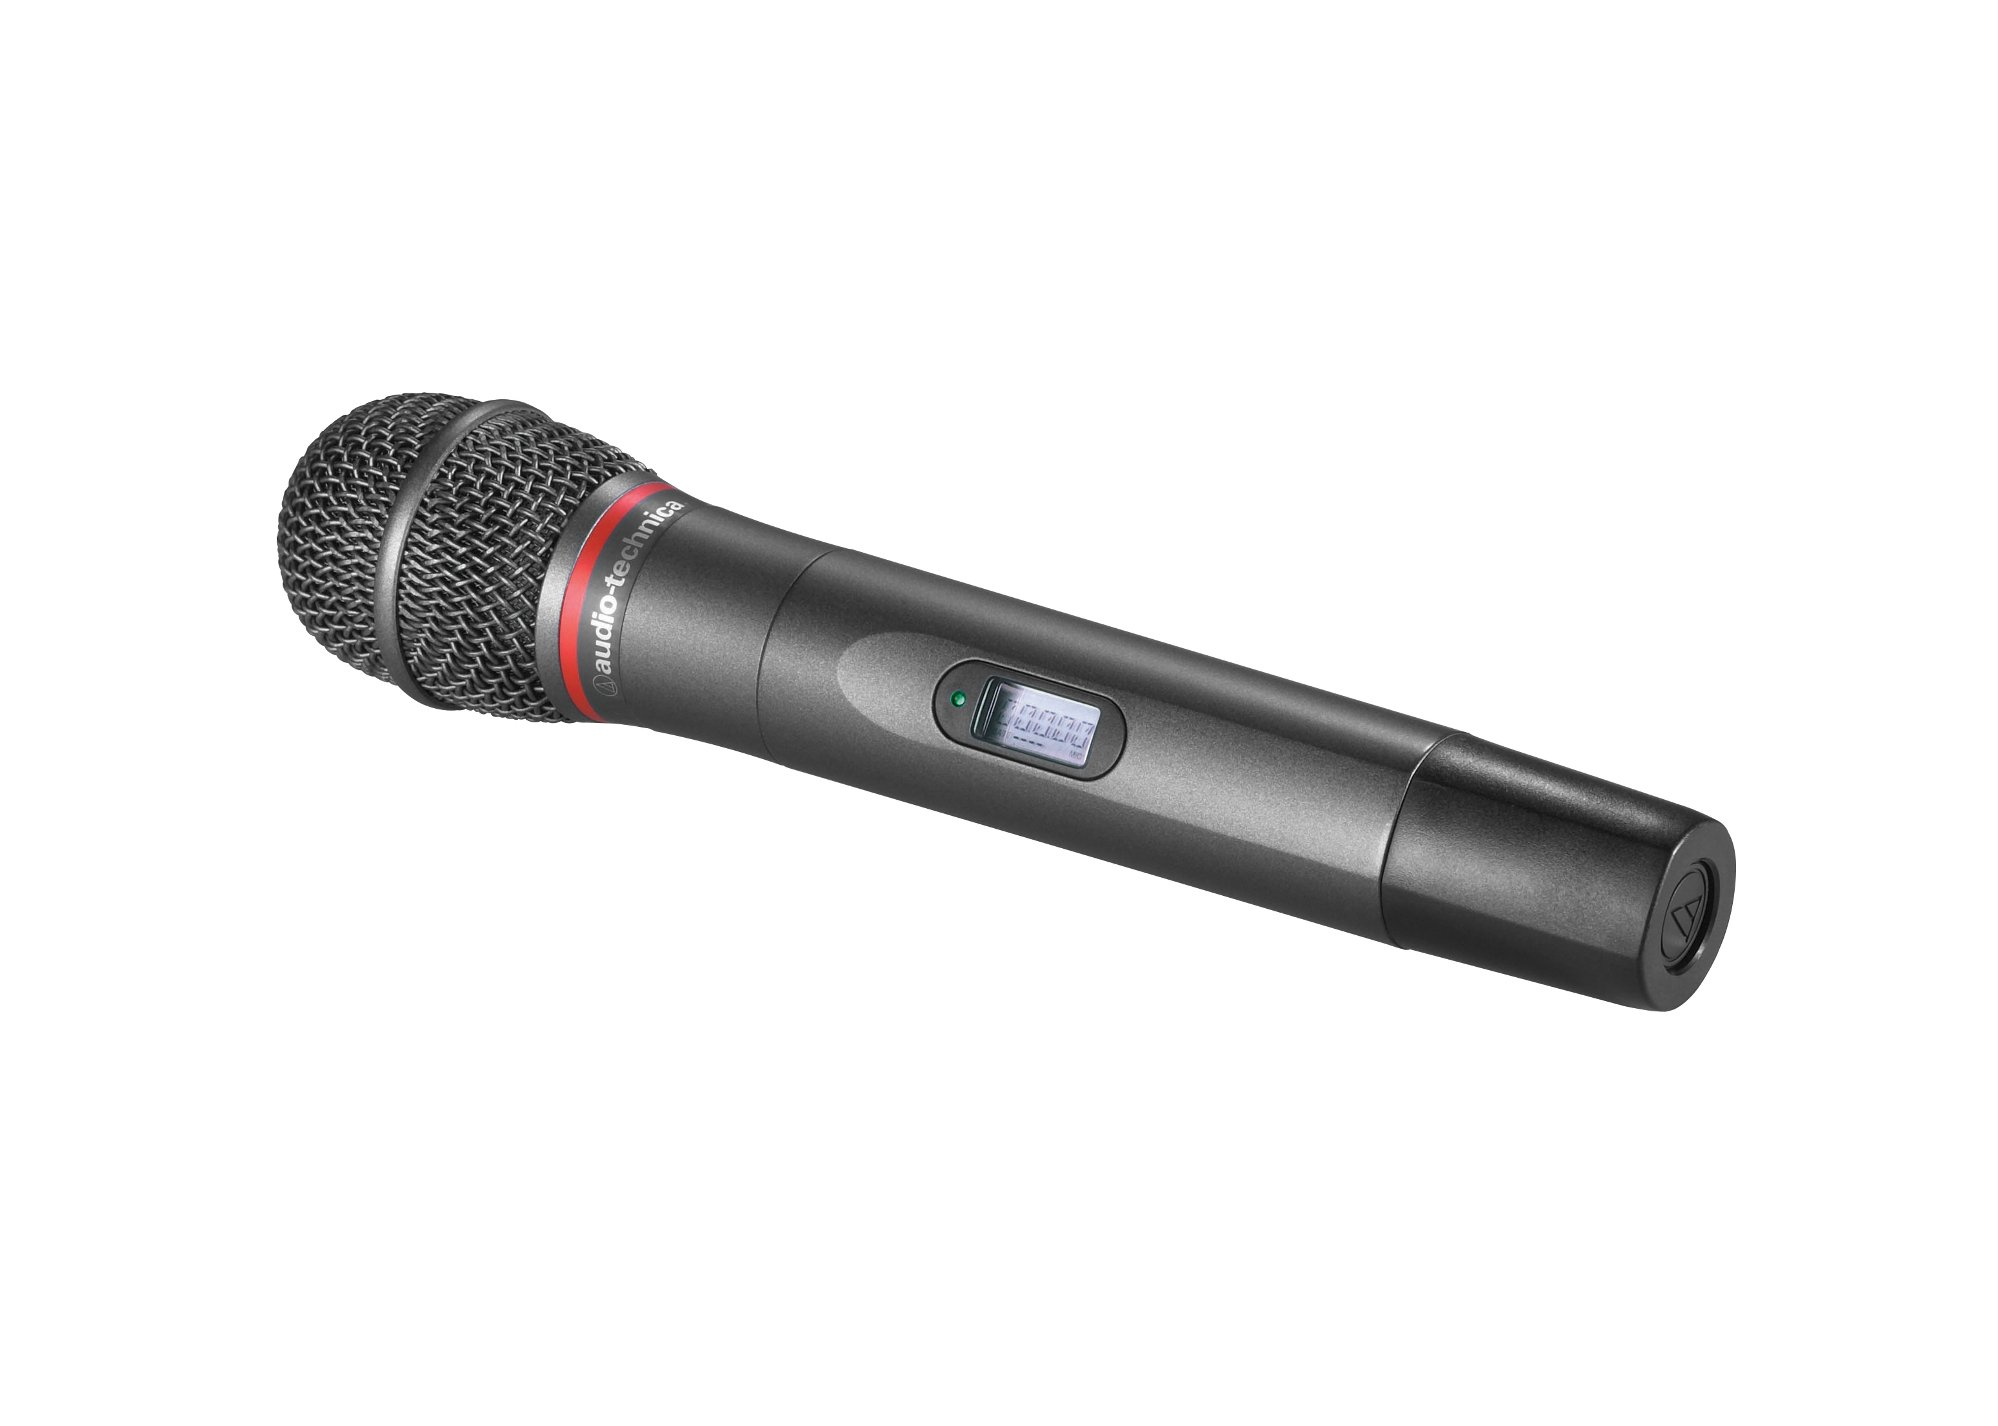 Handheld Transmitter, Cardioid Dynamic, AT 3000 Series, TV25-30